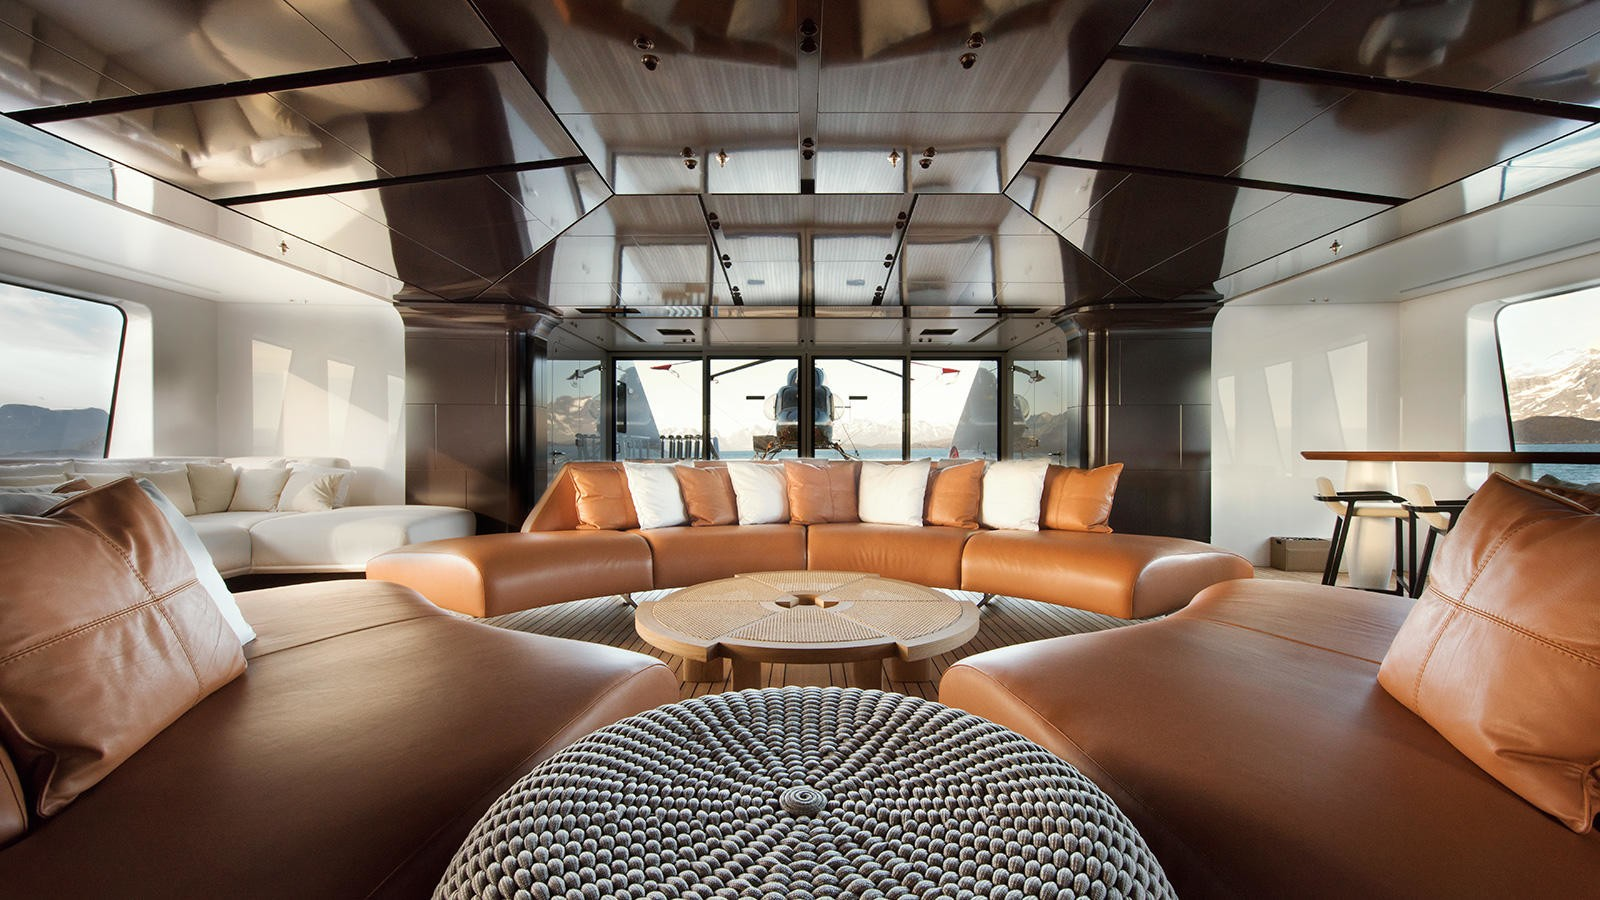 Interiors of the yacht with the helipad aft